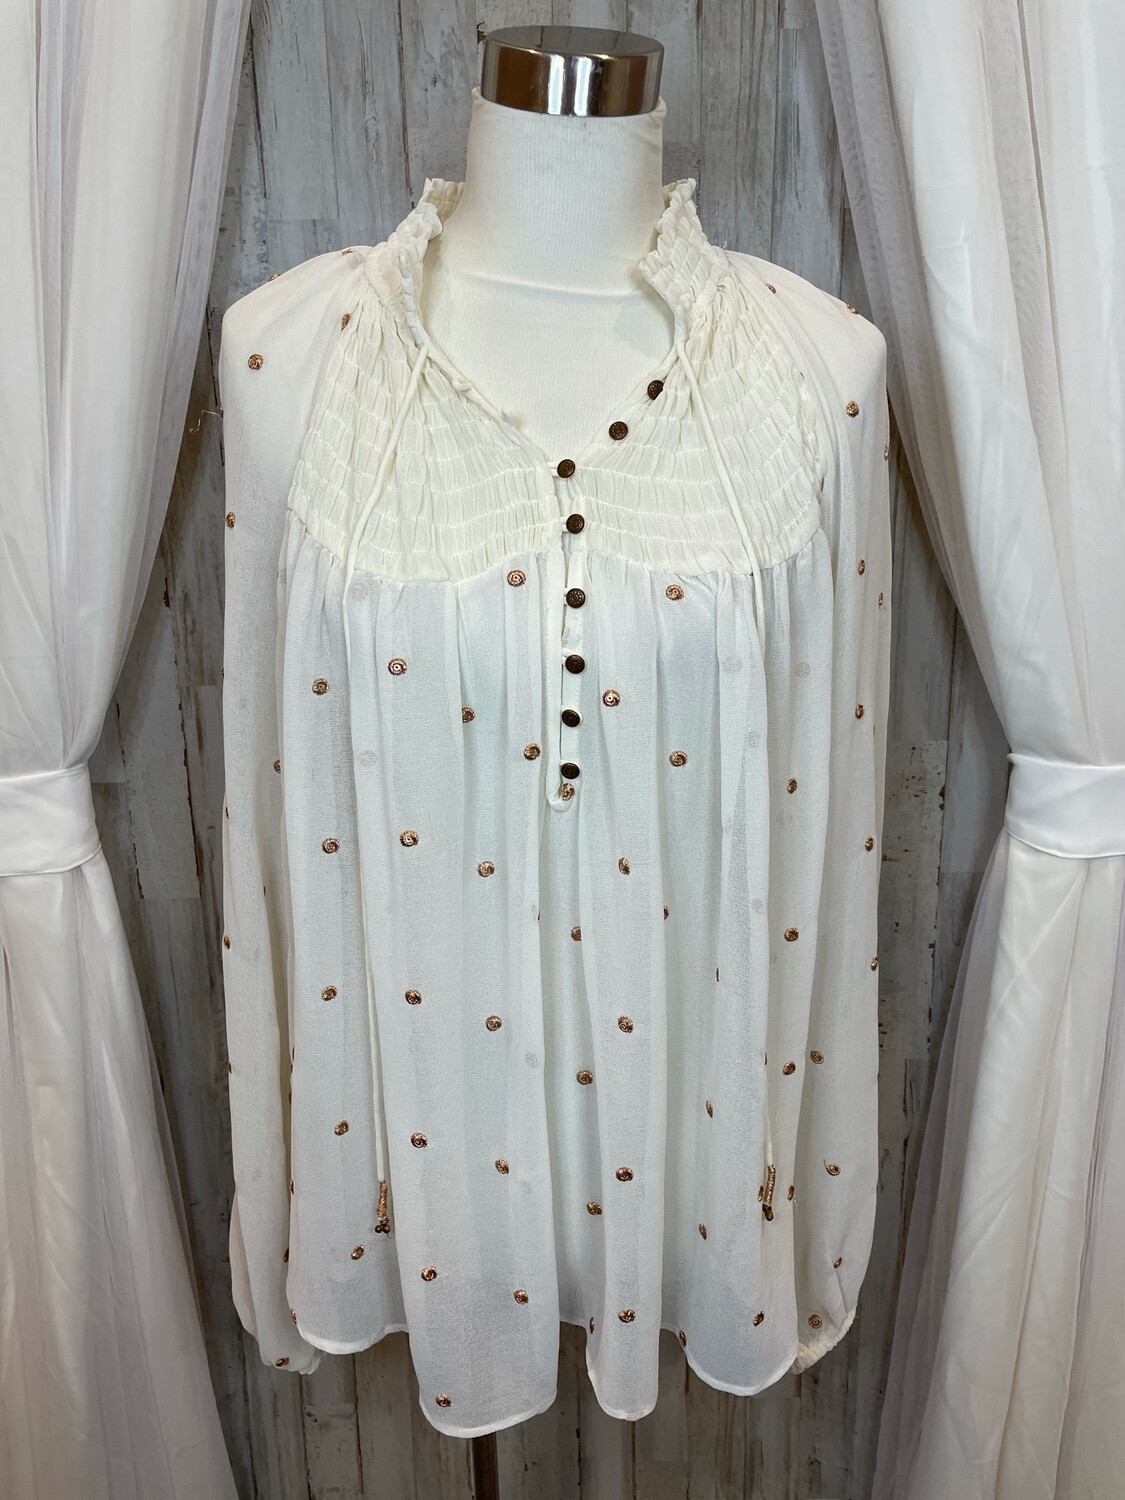 Free People White Sheer Top W/ Gold Dots - L